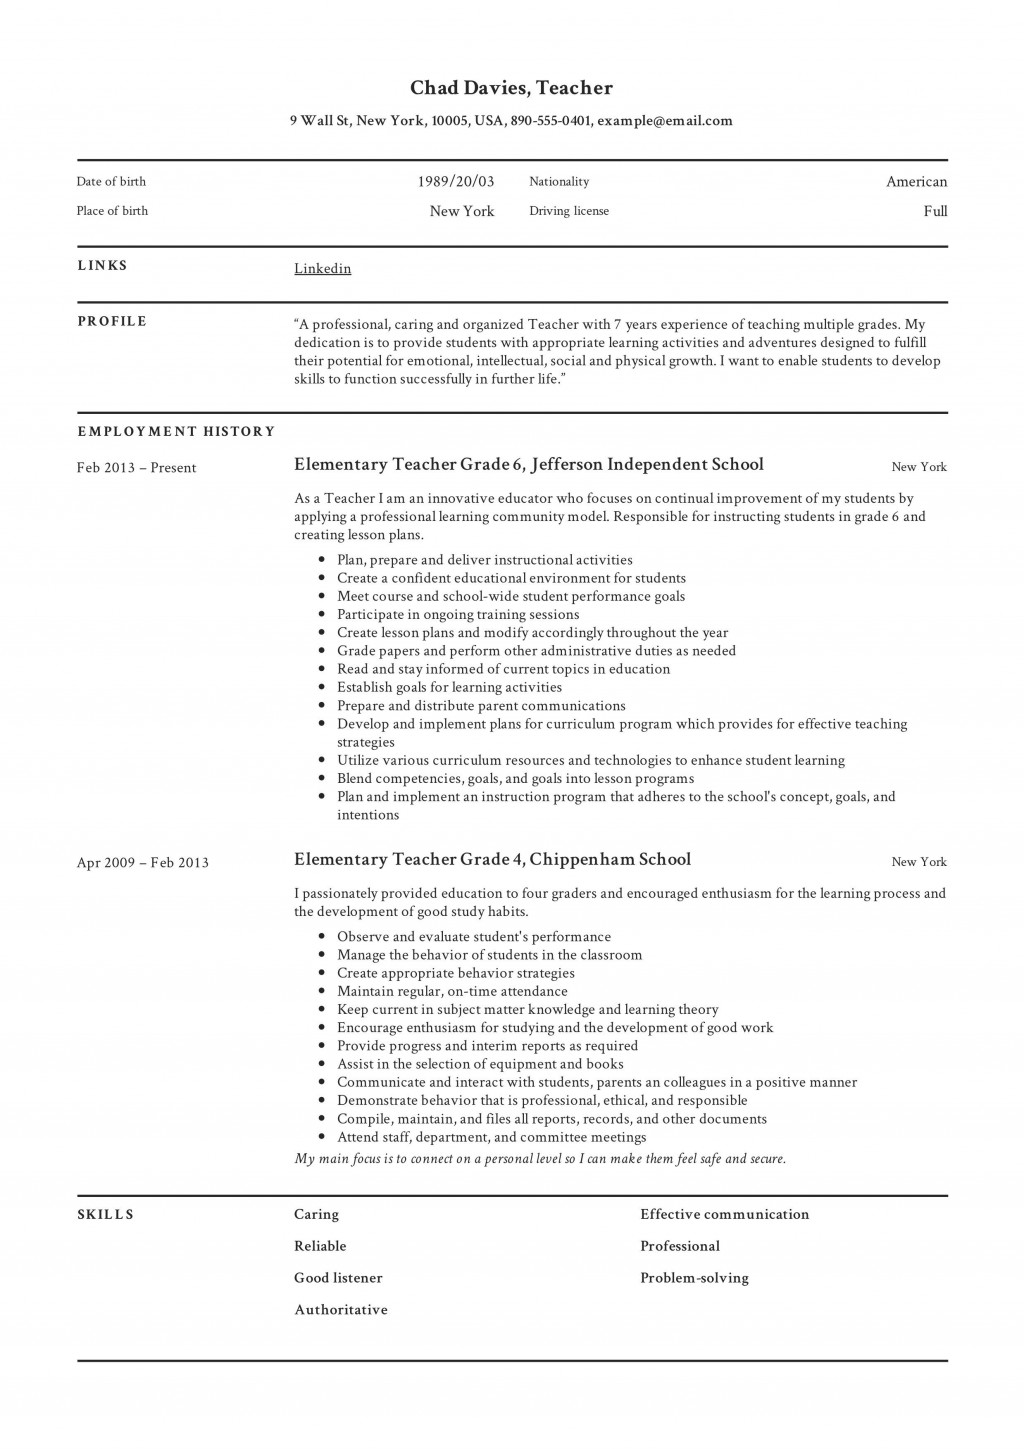 003 Frightening Good Resume For Teaching Job High Definition  Sample With Experience Pdf Fresher In IndiaLarge